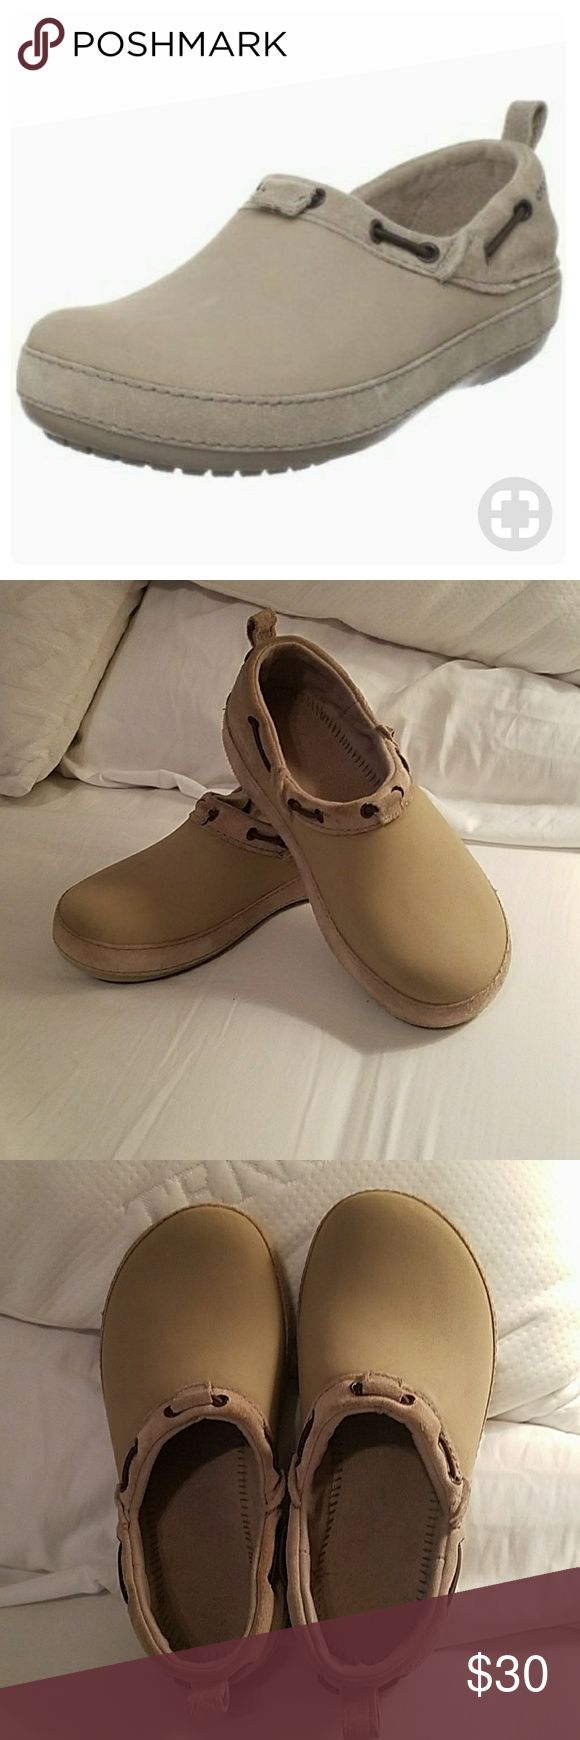 Women's Crocs Surrey Suede Clogs in Beige, 9 Crocs in excellent condition! These are almost new. No signs of wear. Suede and man made materials. Size 9, but I think these fit like an 8.5. Very comfortable! CROCS Shoes Mules & Clogs